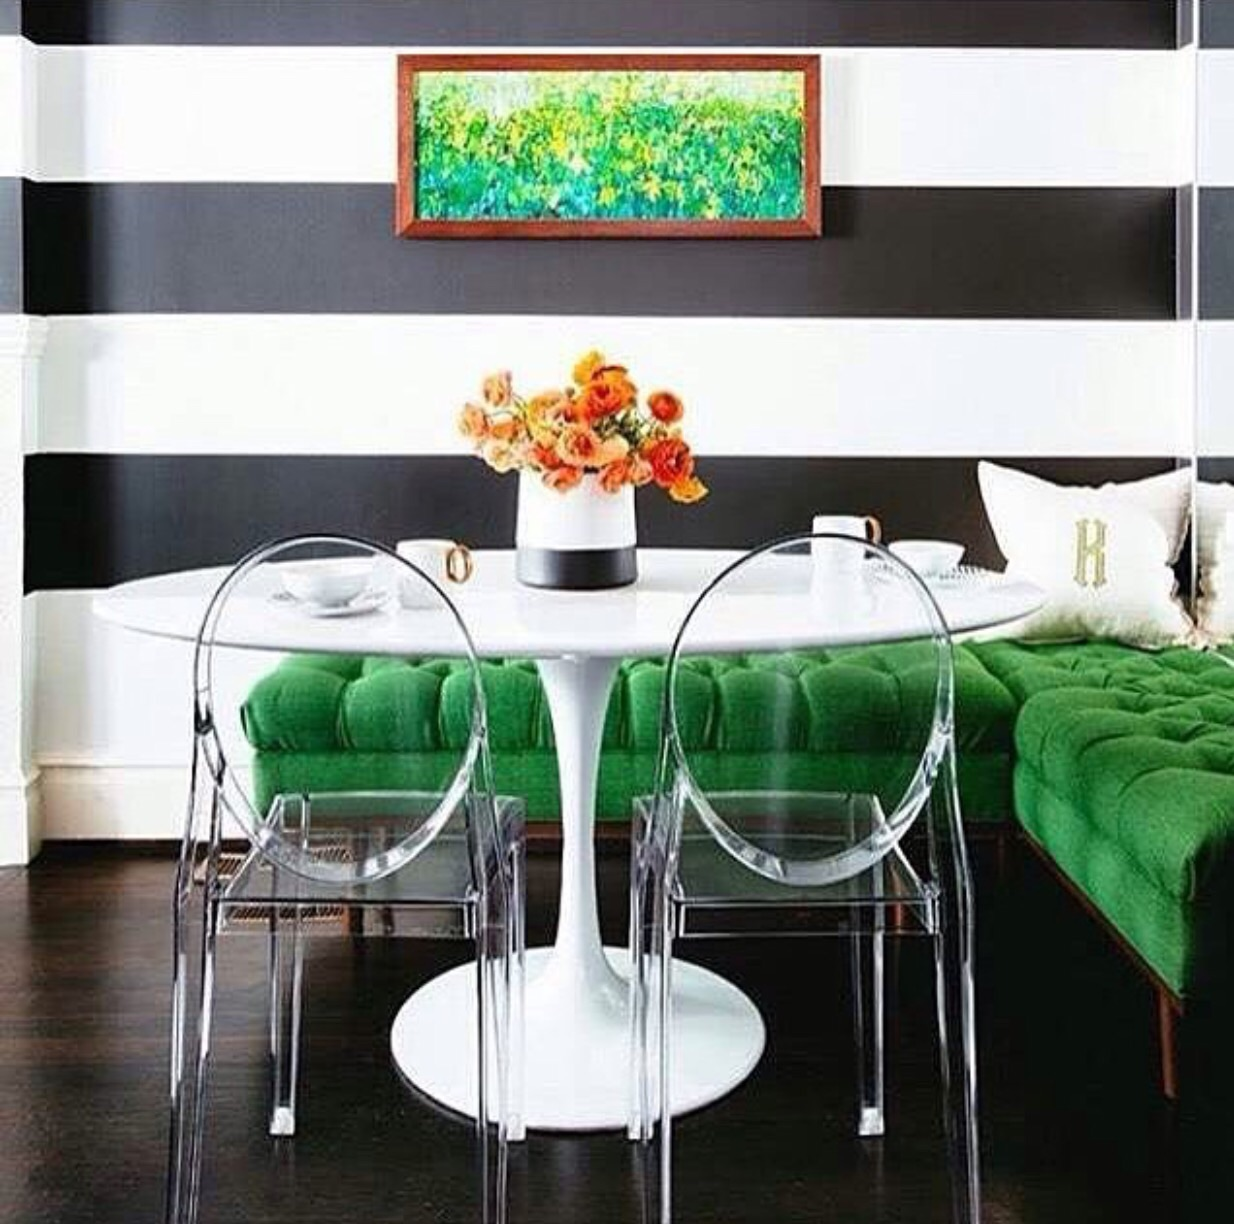 This upholstered bench acts as a bold statement piece in this informal banquette dining area.